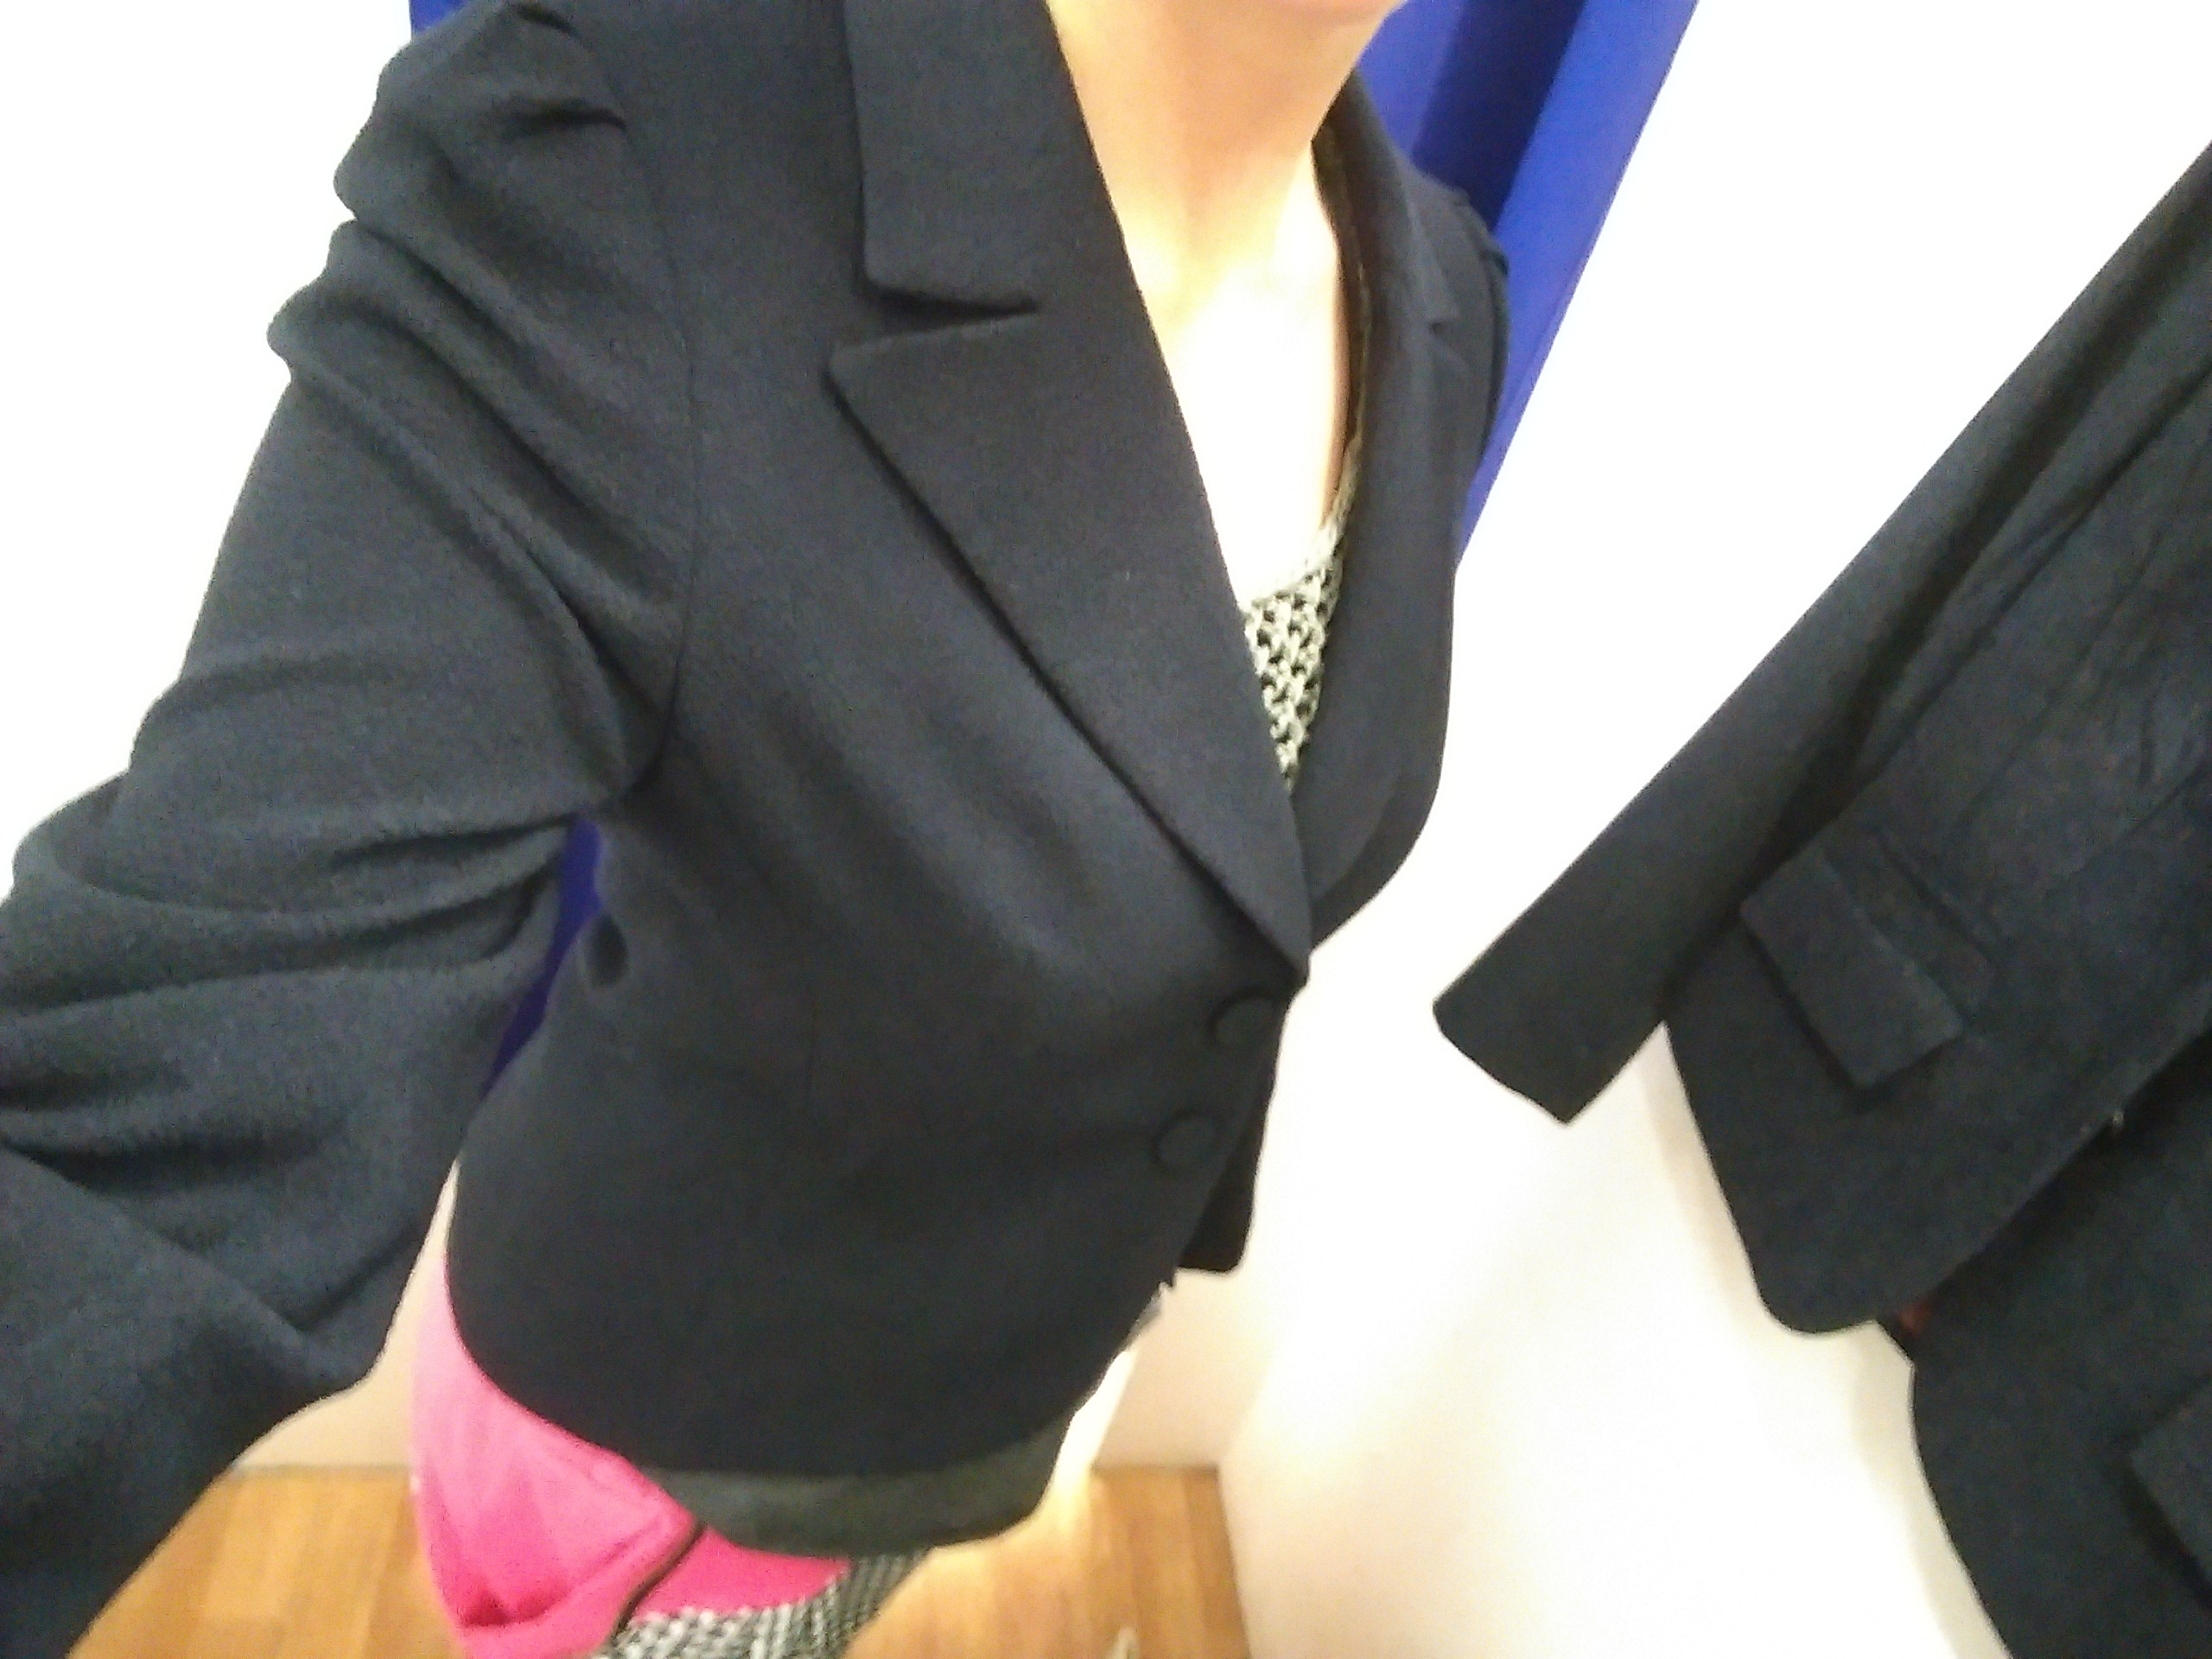 A selfie of a torso wearing a navy suit jacket and pink trousers in a shop changing room